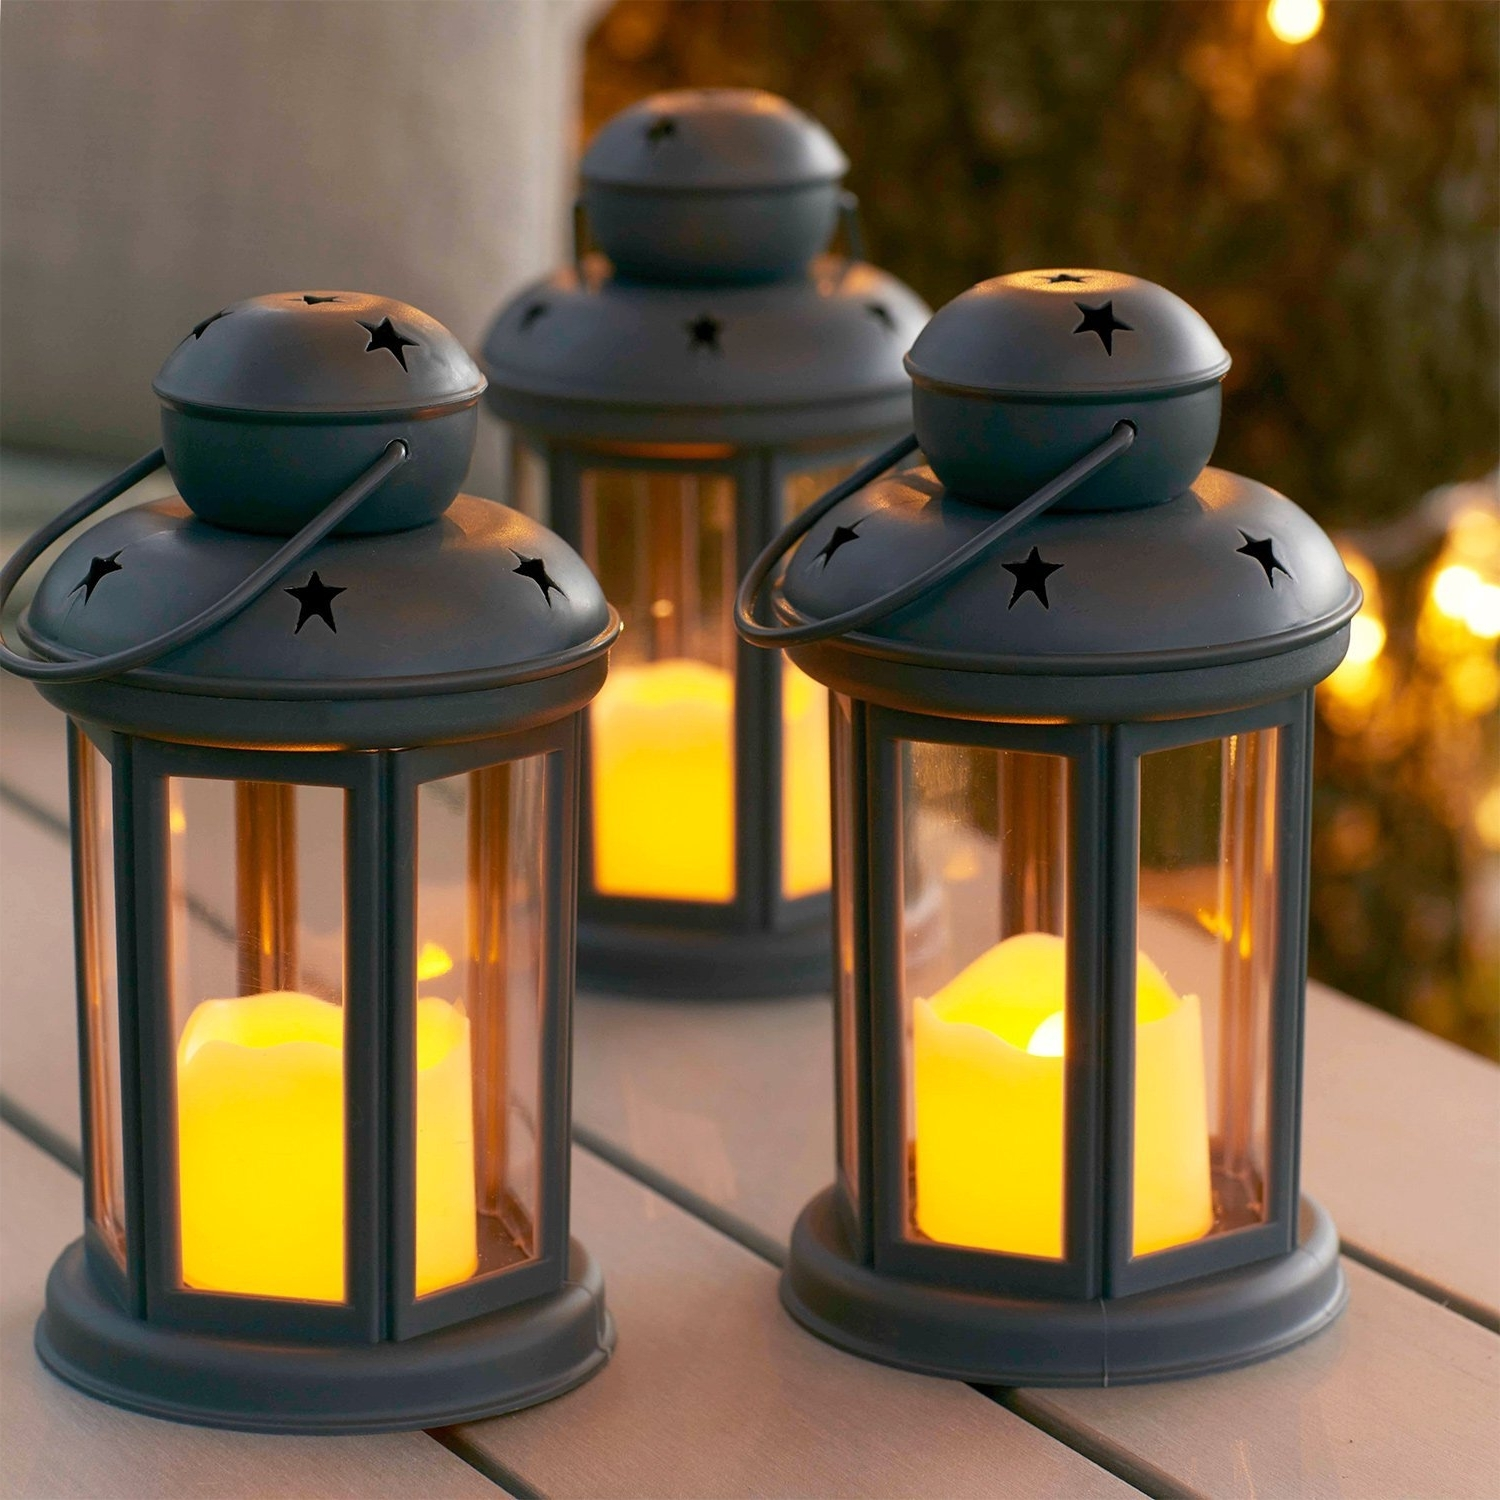 Plastic Lanterns Outdoor Lights – Awesome Home Pertaining To Newest Outdoor Plastic Lanterns (View 7 of 20)